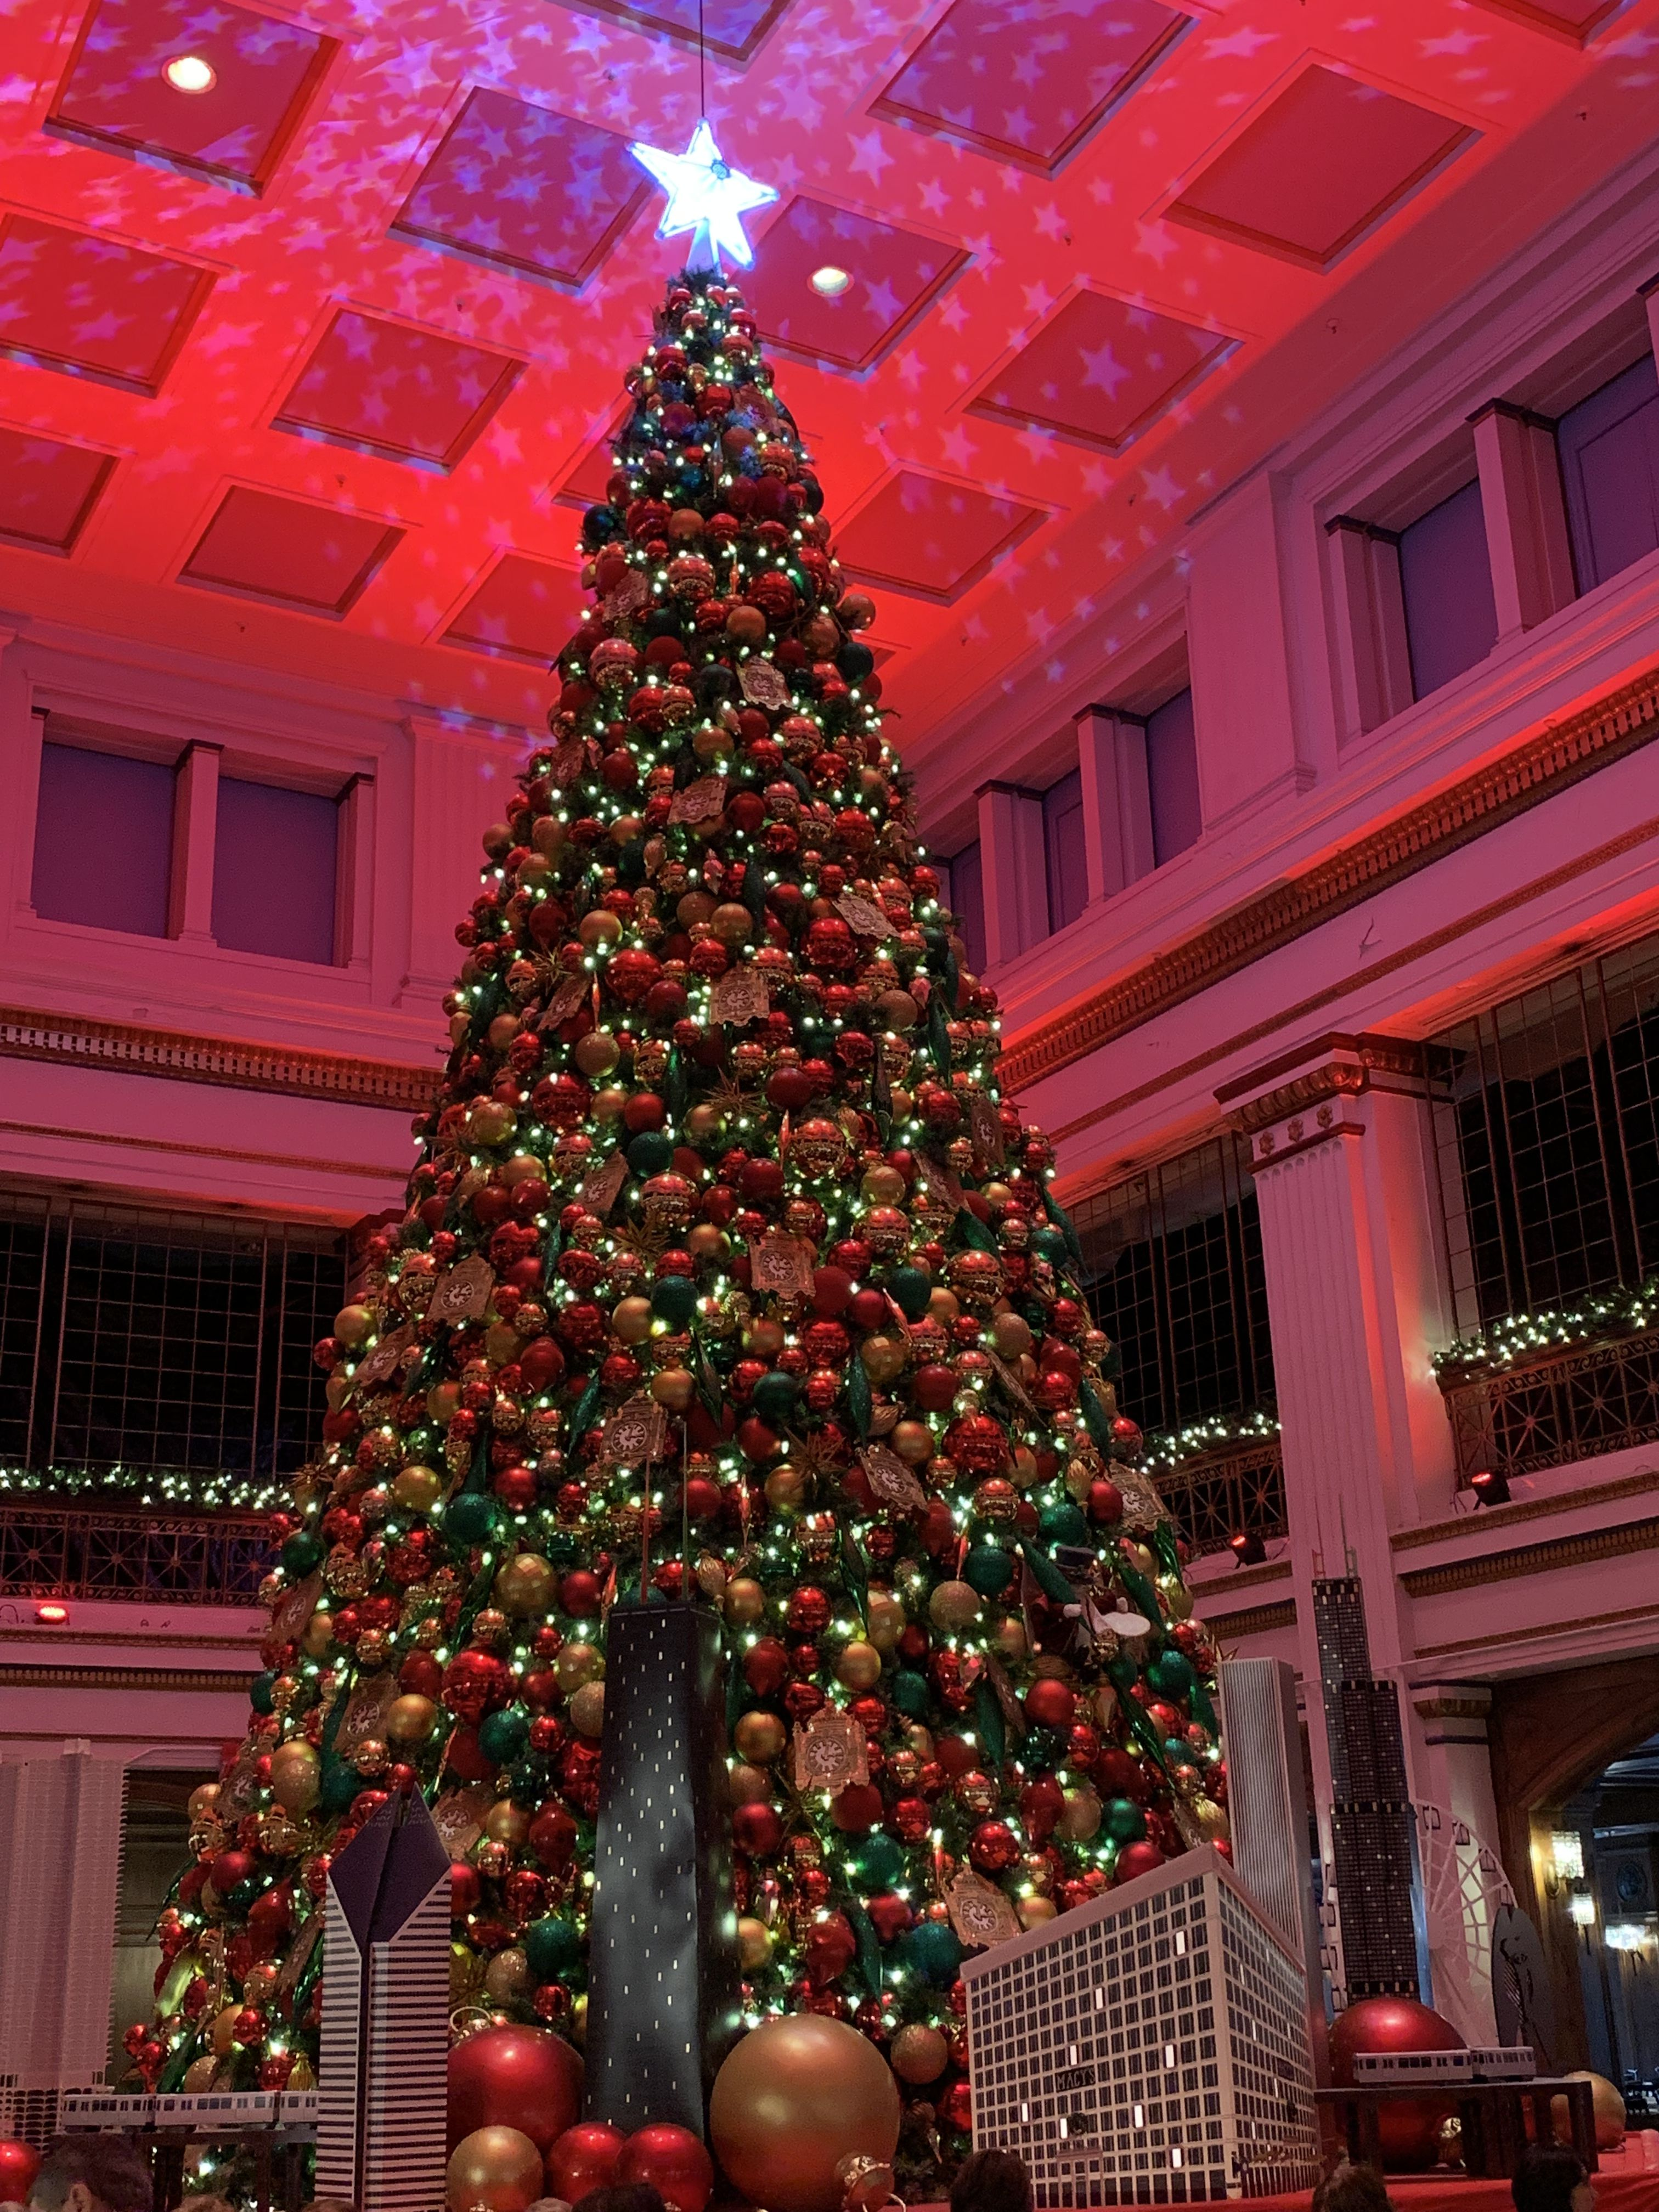 Walnut Room Chicago Christmas 2019 The Great Tree, Walnut Room, Macy's Chicago | Christmas 2018 in